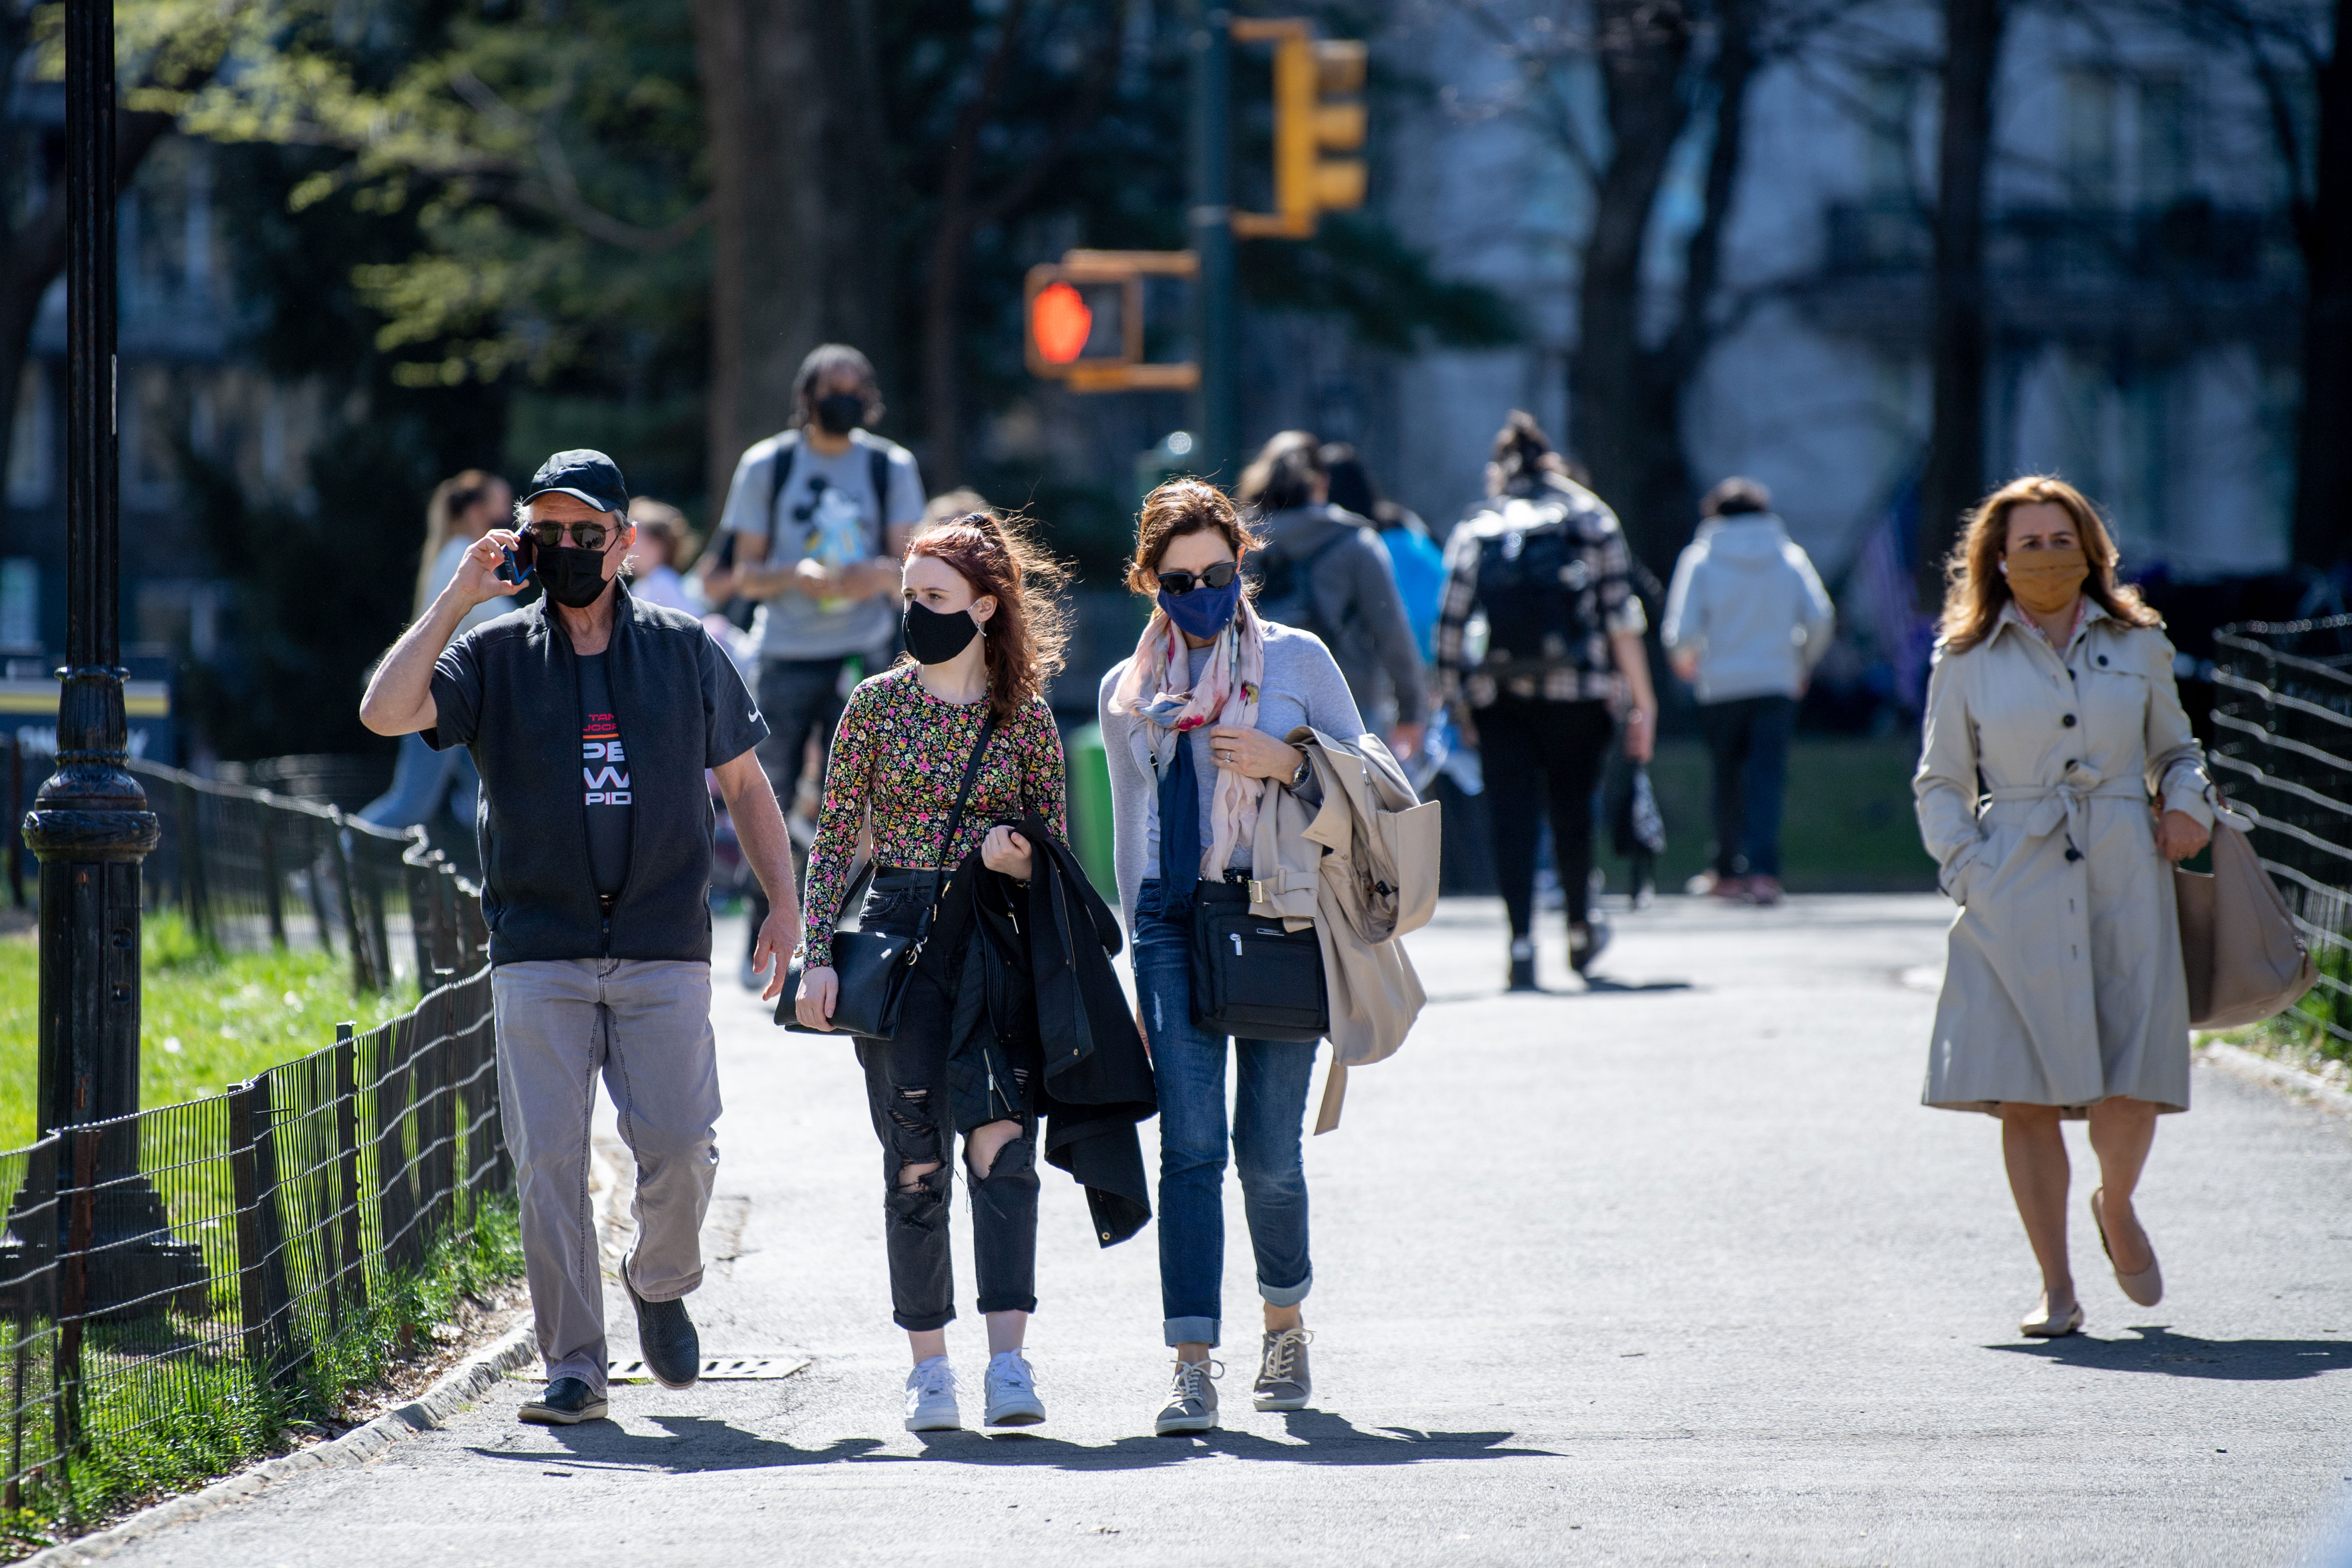 People walk in New York's Central Park on April 6.